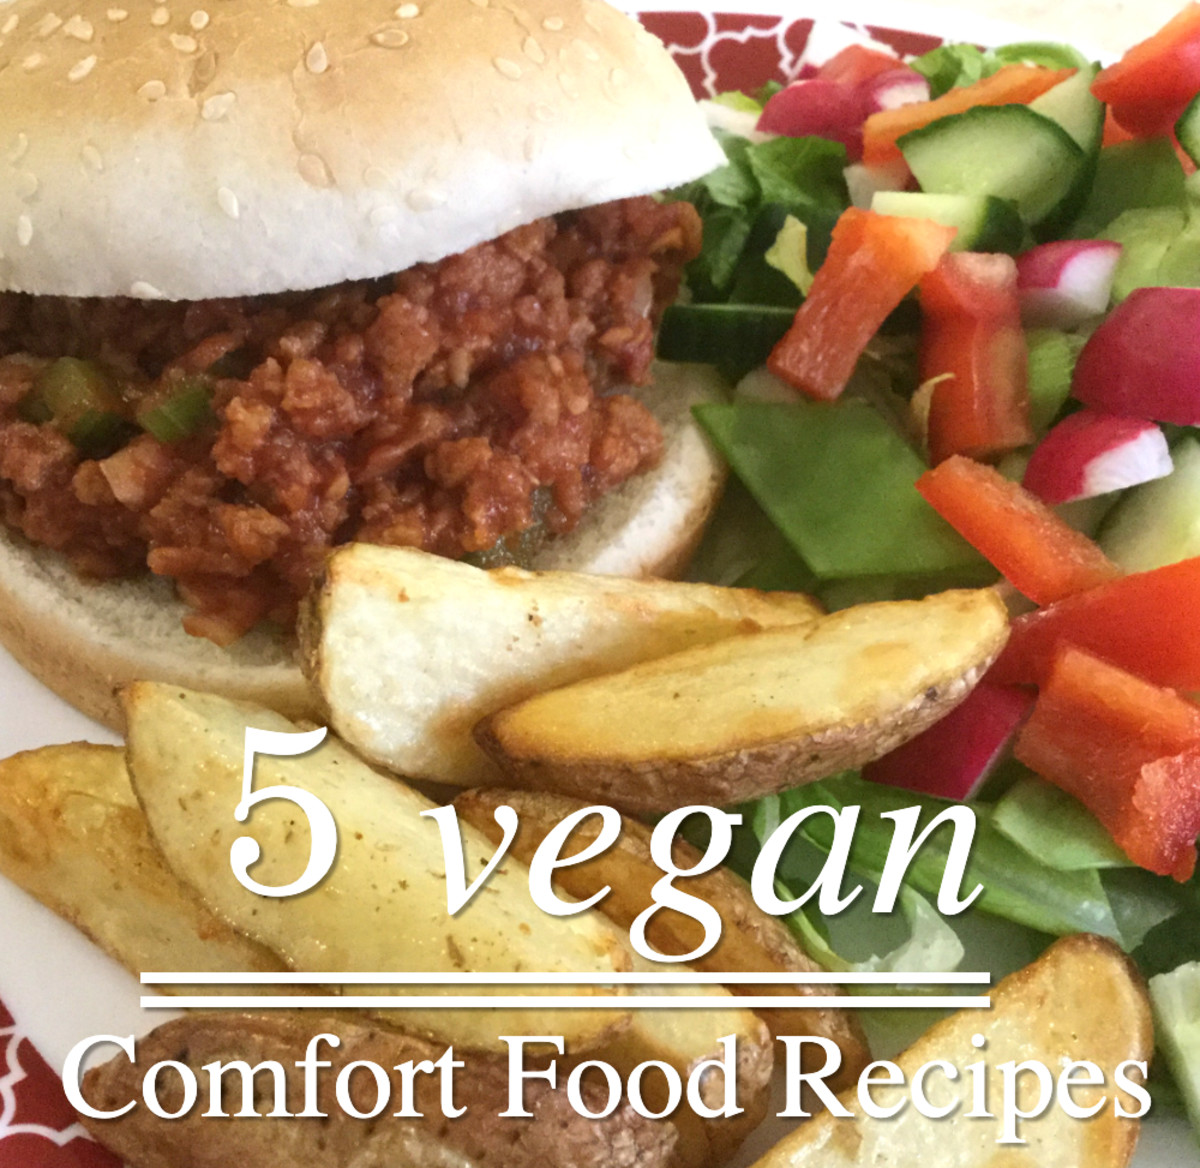 Top 5 Vegan Comfort Food Recipes